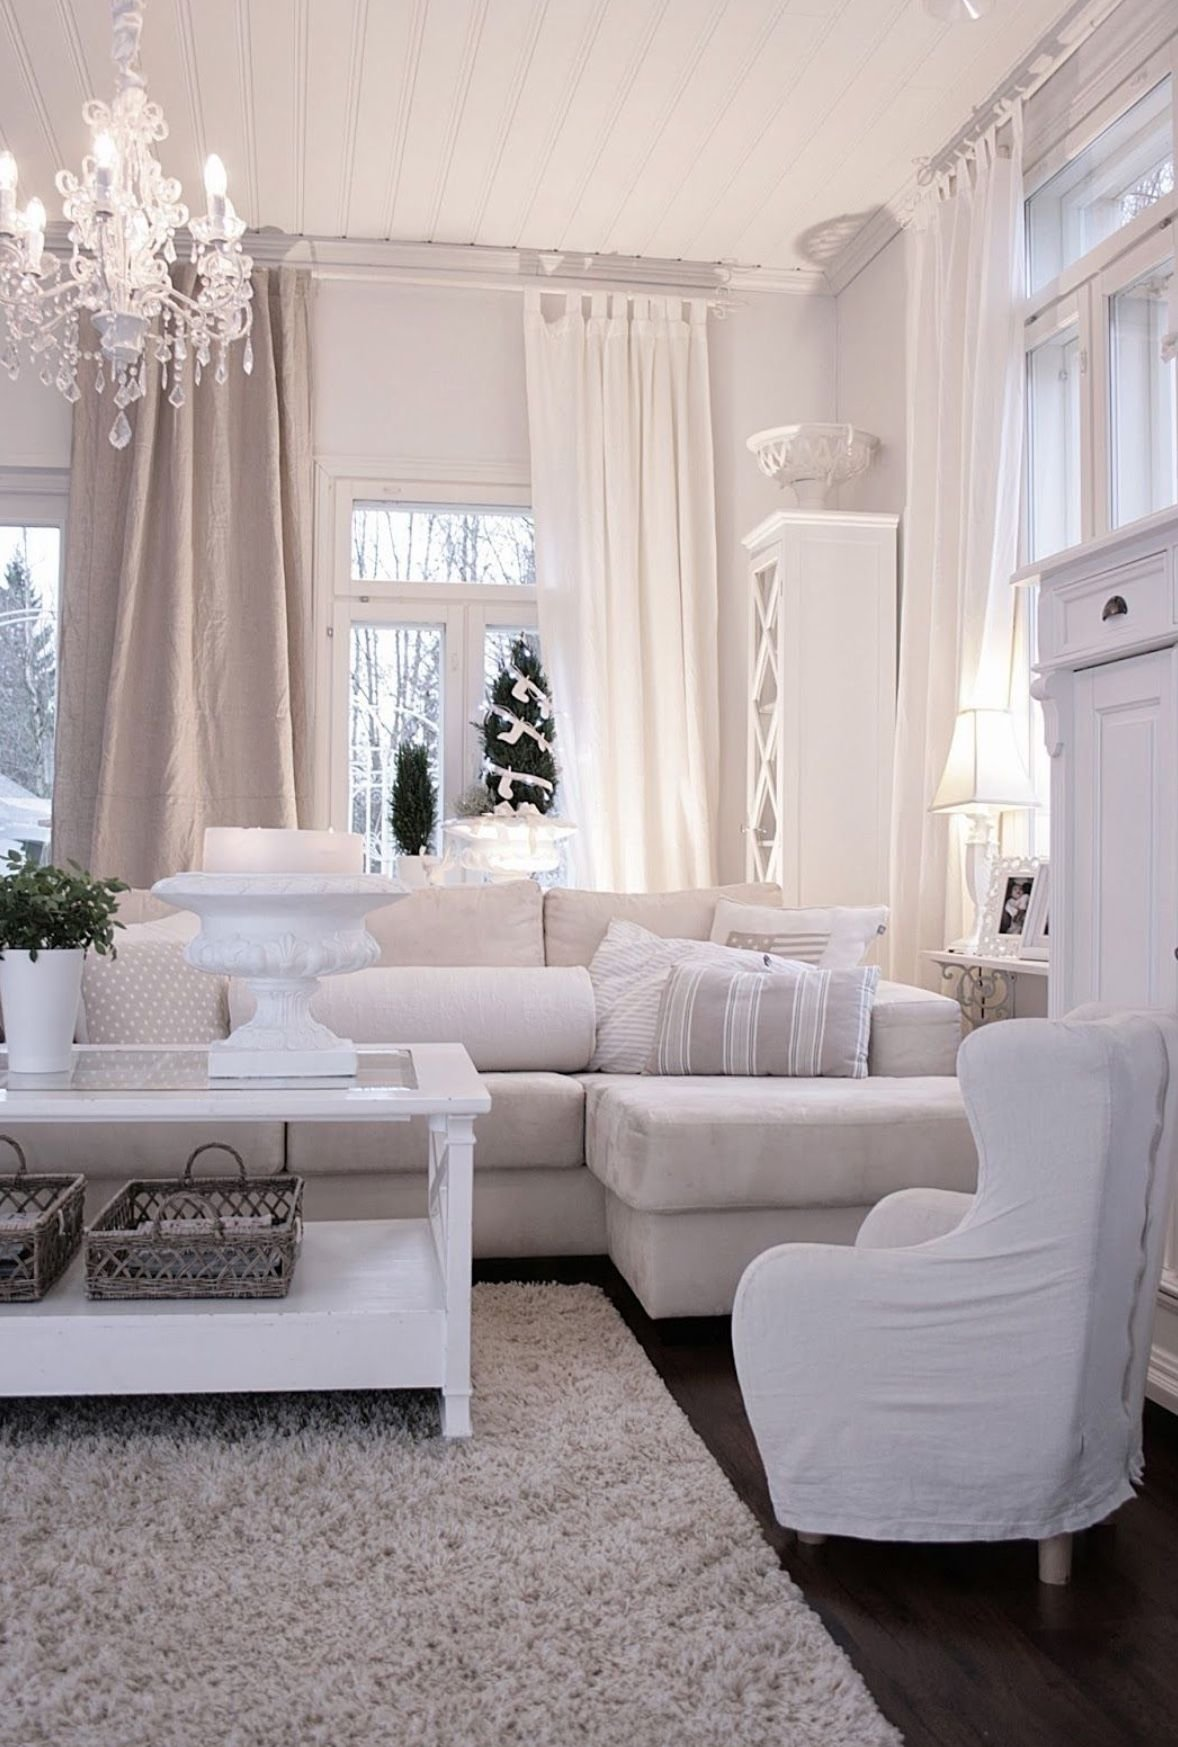 pinterest: aliimaac3 | home | pinterest | living rooms, room and